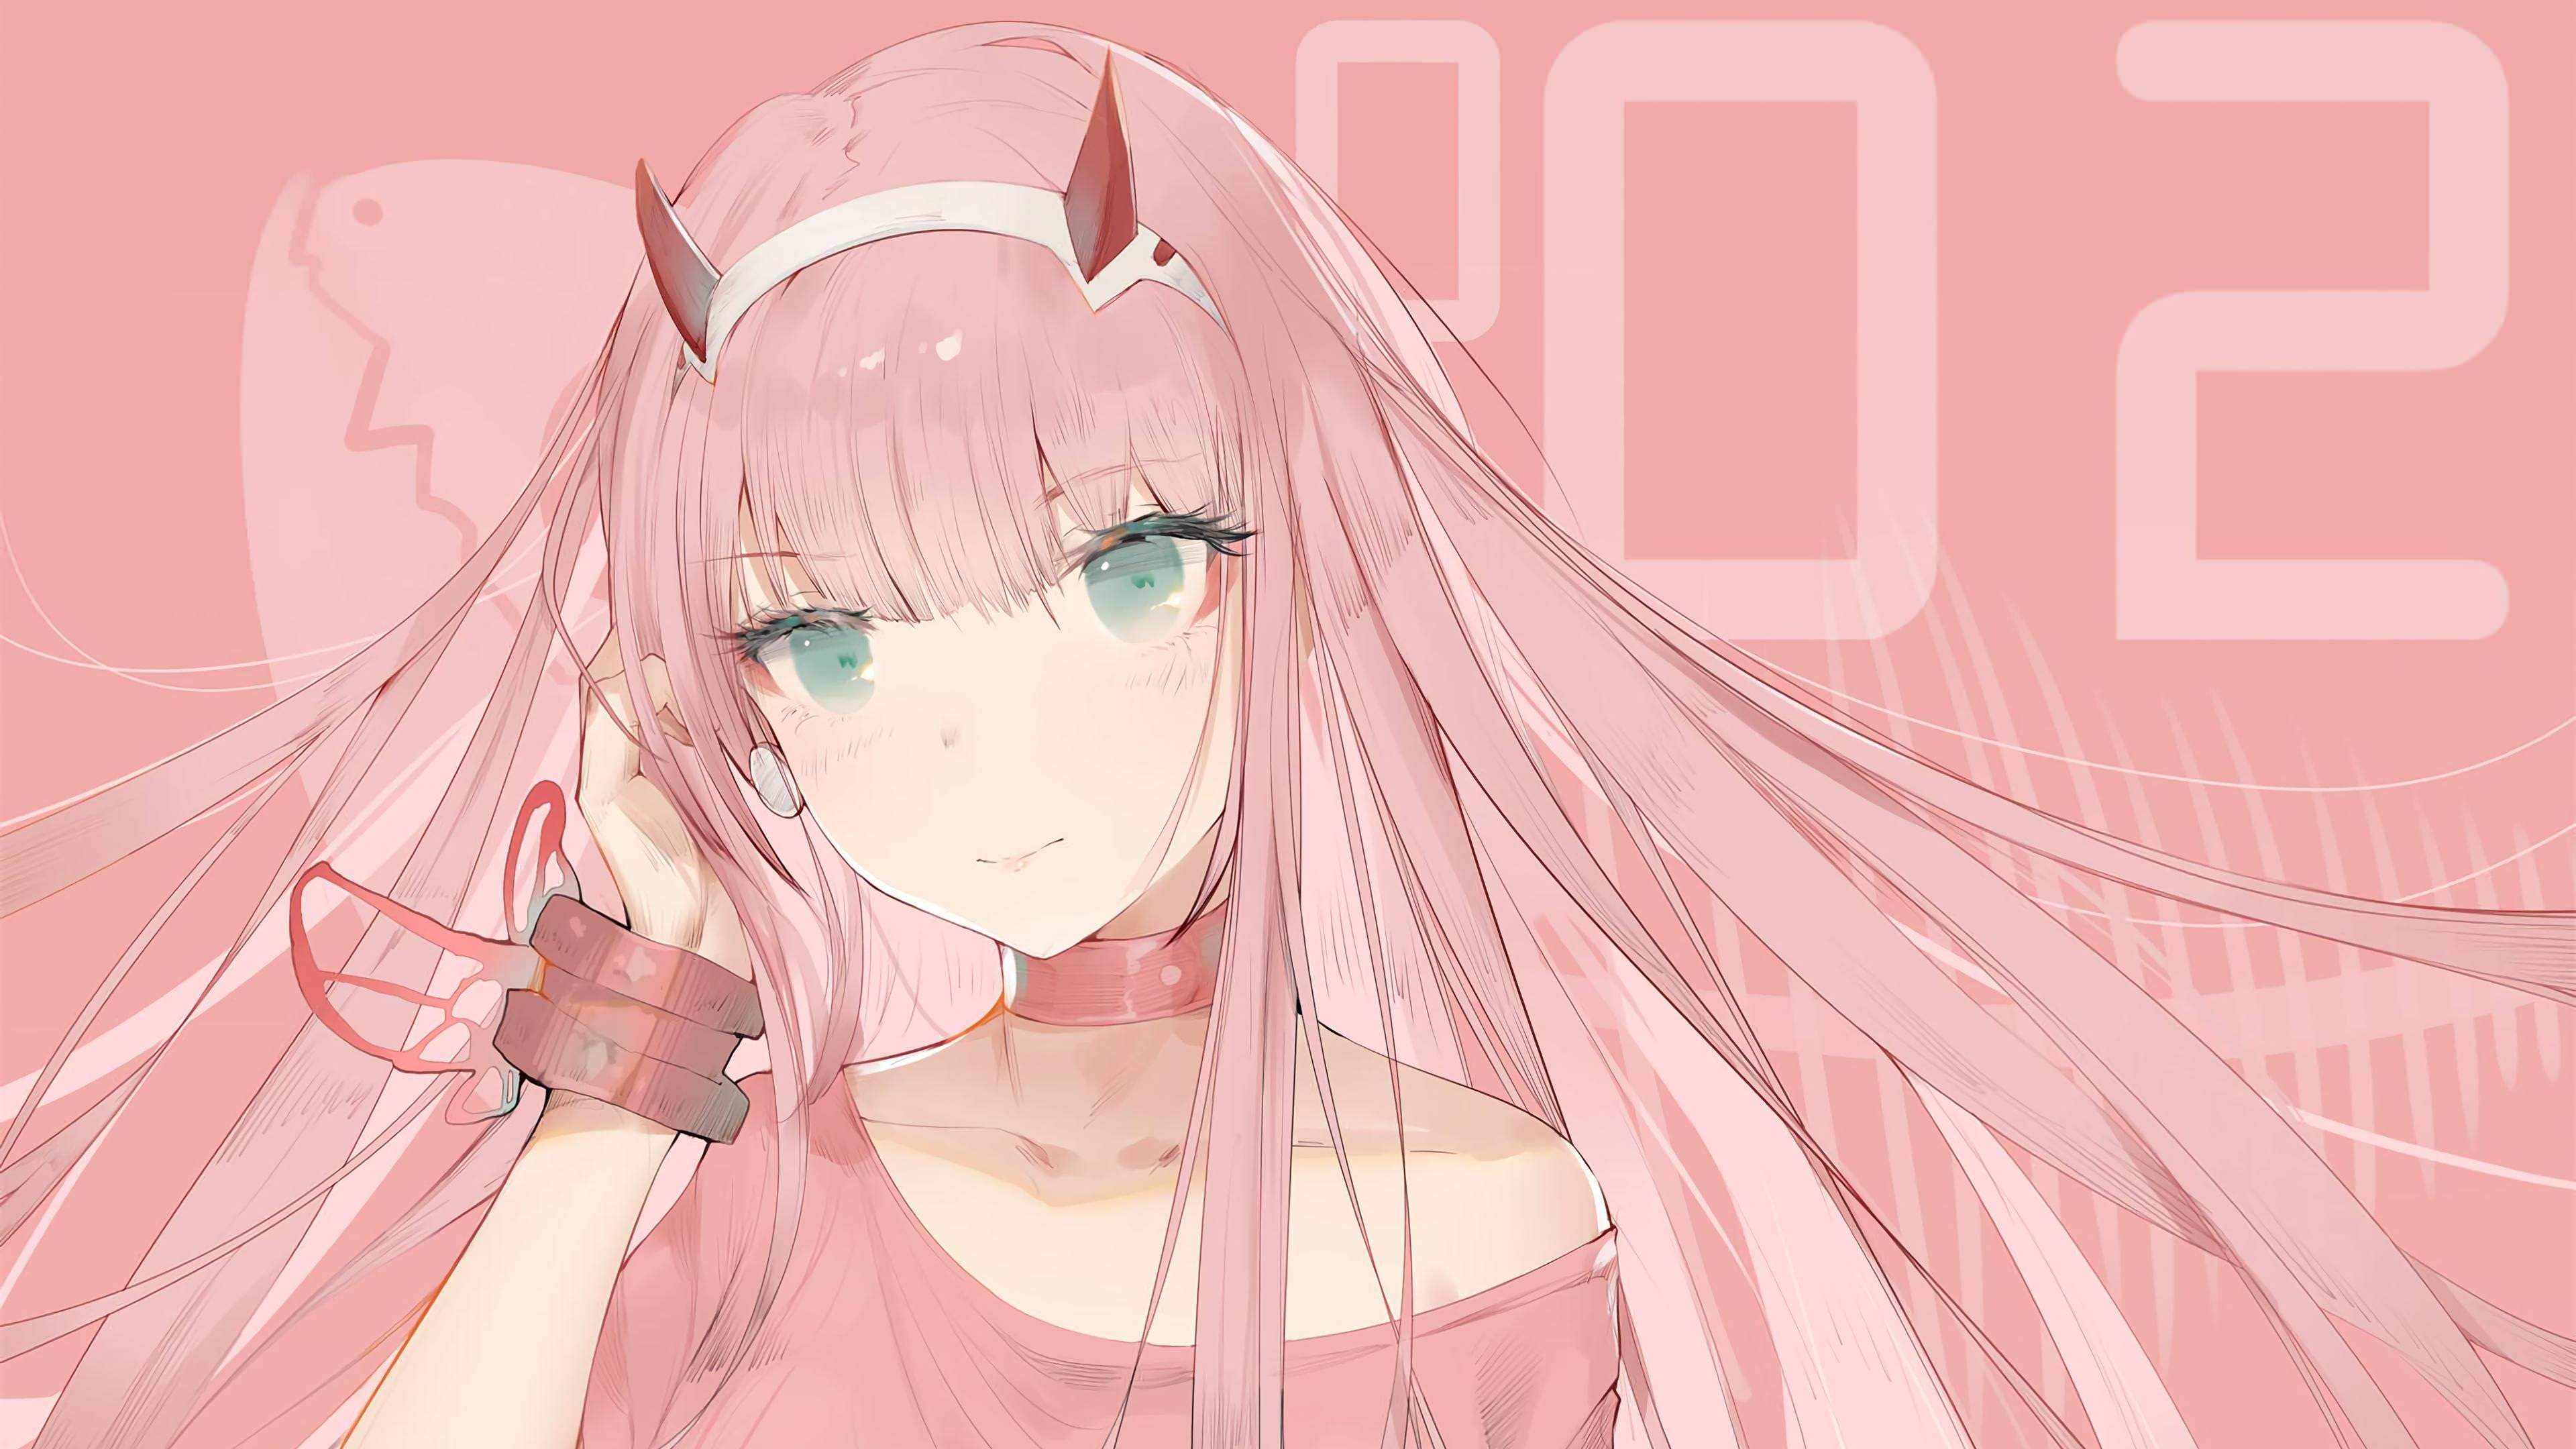 Zero Two Darling In The Franxx 4k Hd Wallpapers Digital Art Wallpapers Darling In The Franxx W Anime Computer Wallpaper Darling In The Franxx Anime Wallpaper